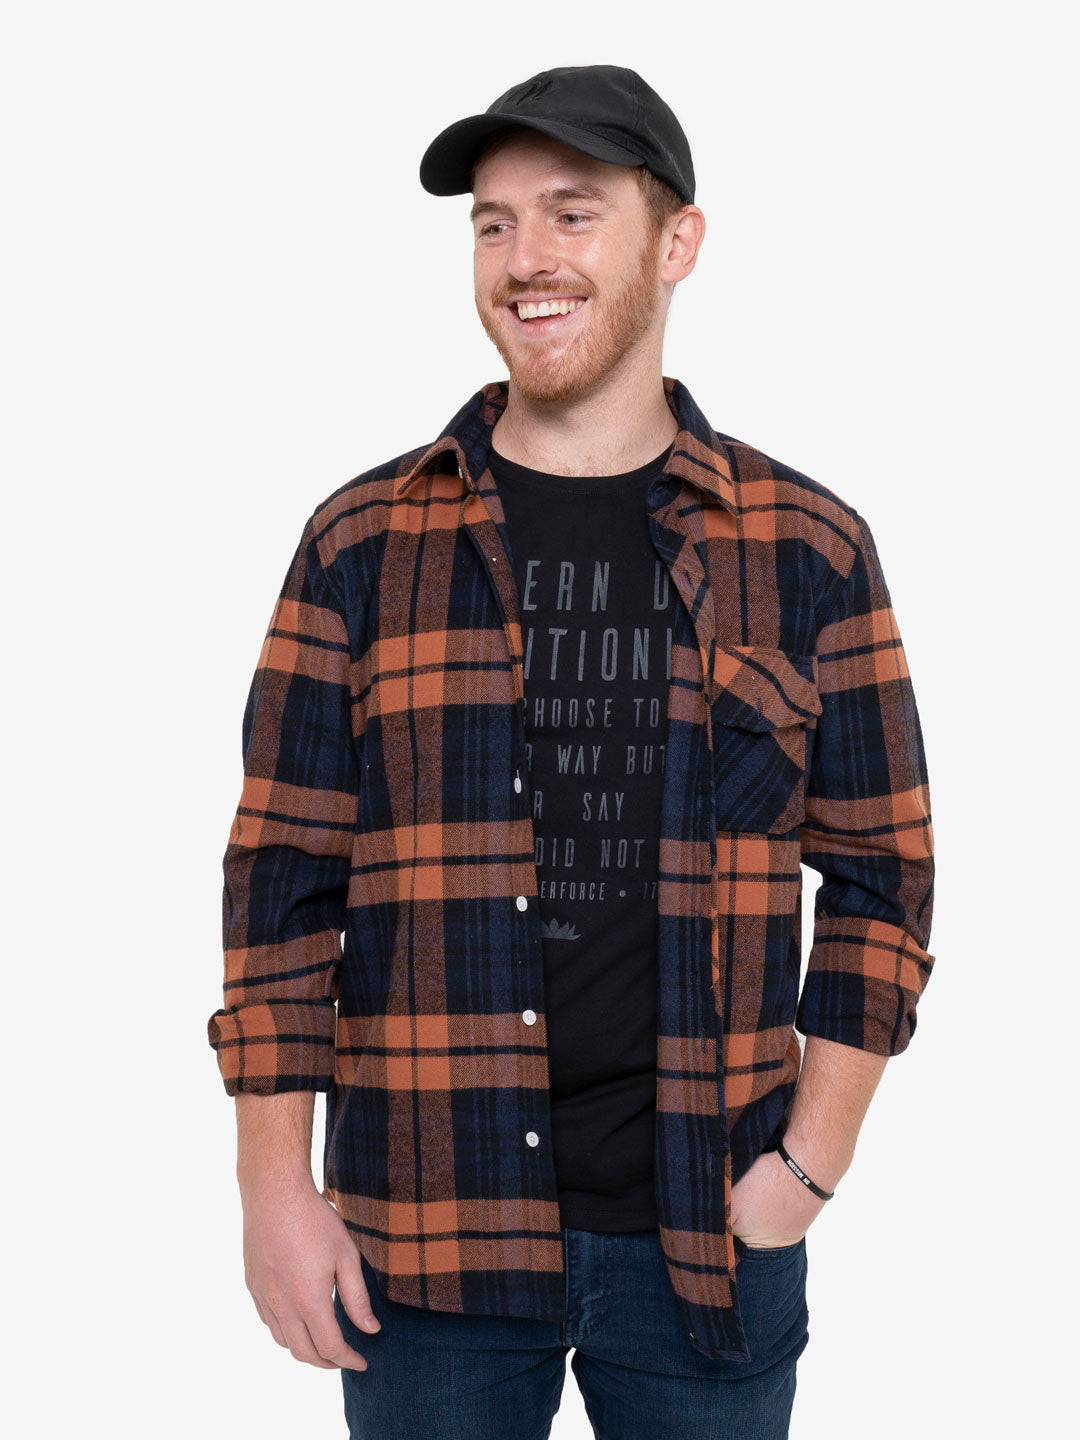 Navy and Rust Plaid Unisex Classic Flannel Shirt